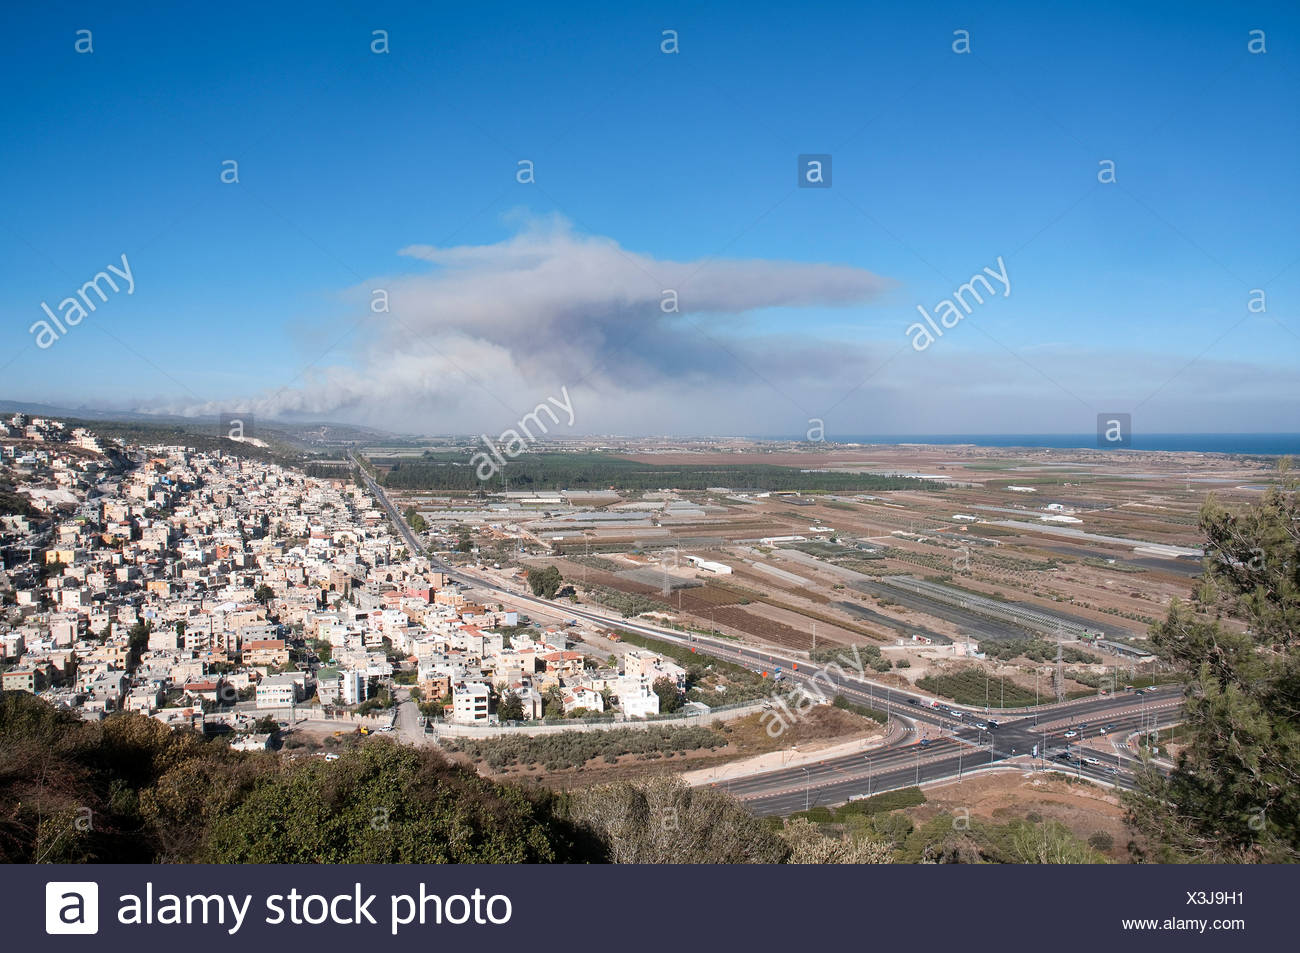 Israel, Coastal plains as seen from the Carmel mountain Anvil cloud formation in the background - Stock Image